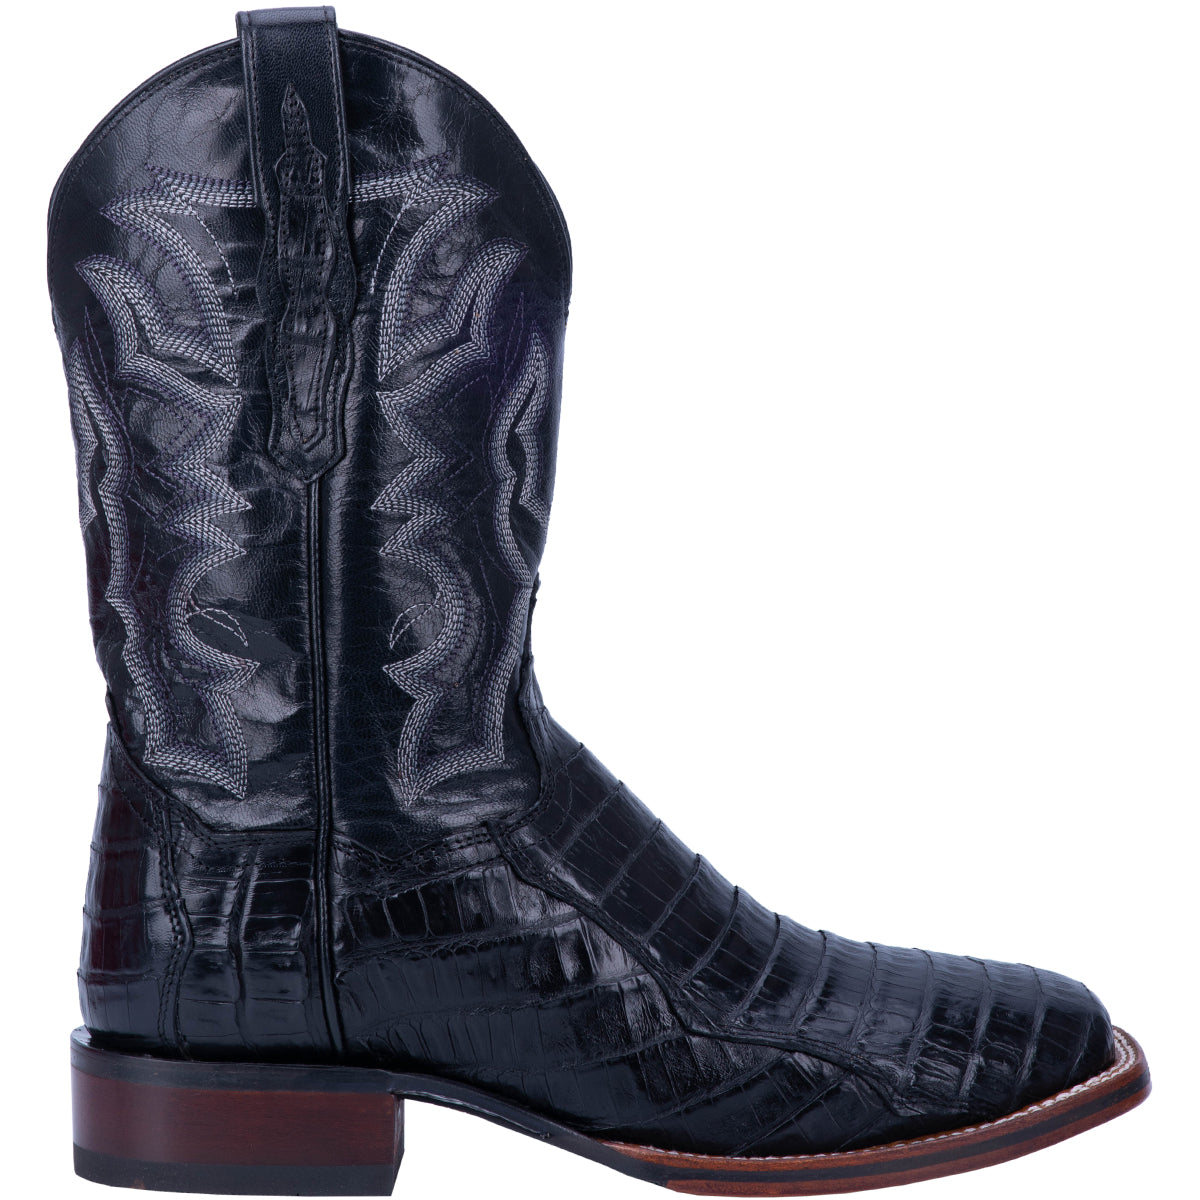 KINGSLY CAIMAN BOOT 5391880683562